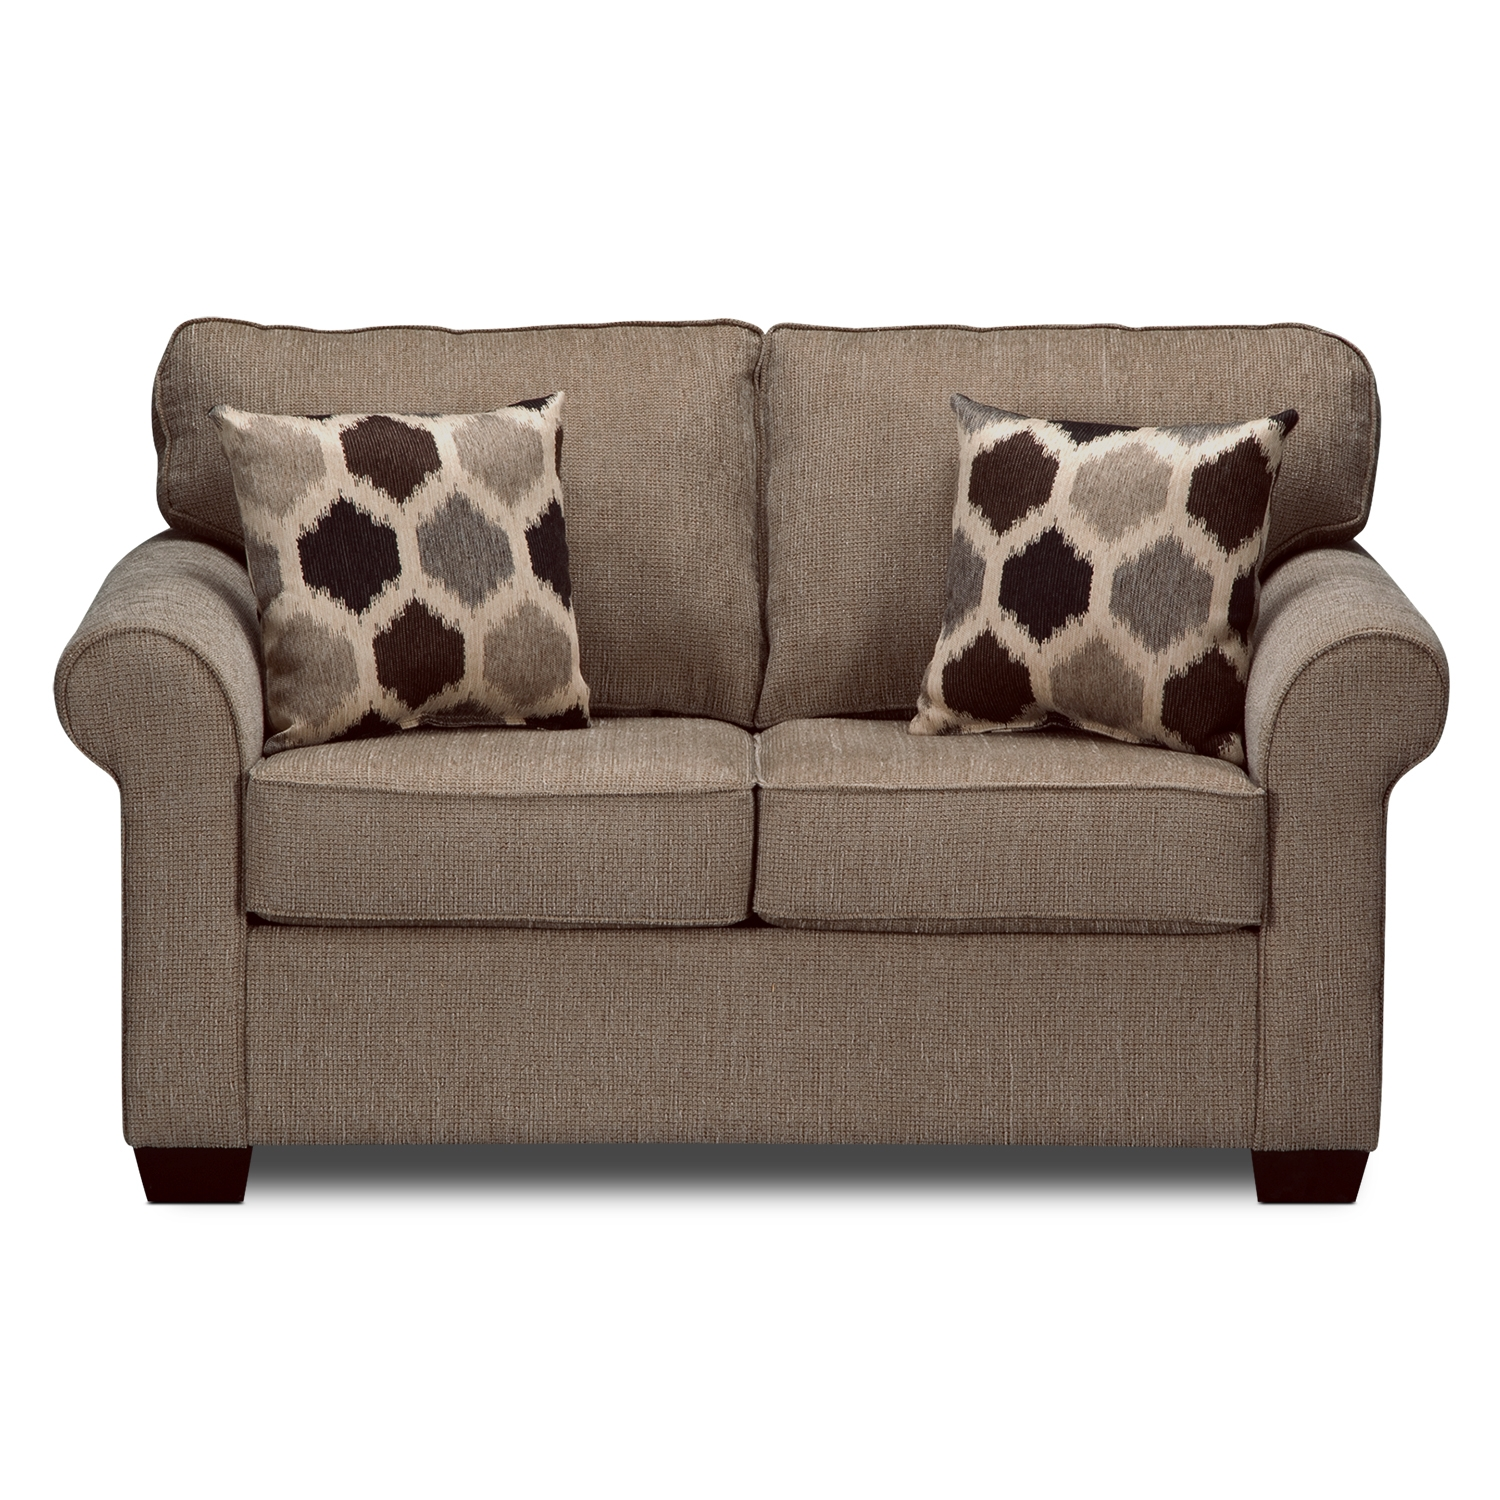 Image of: Tips Twin Sleeper Sofa Chair